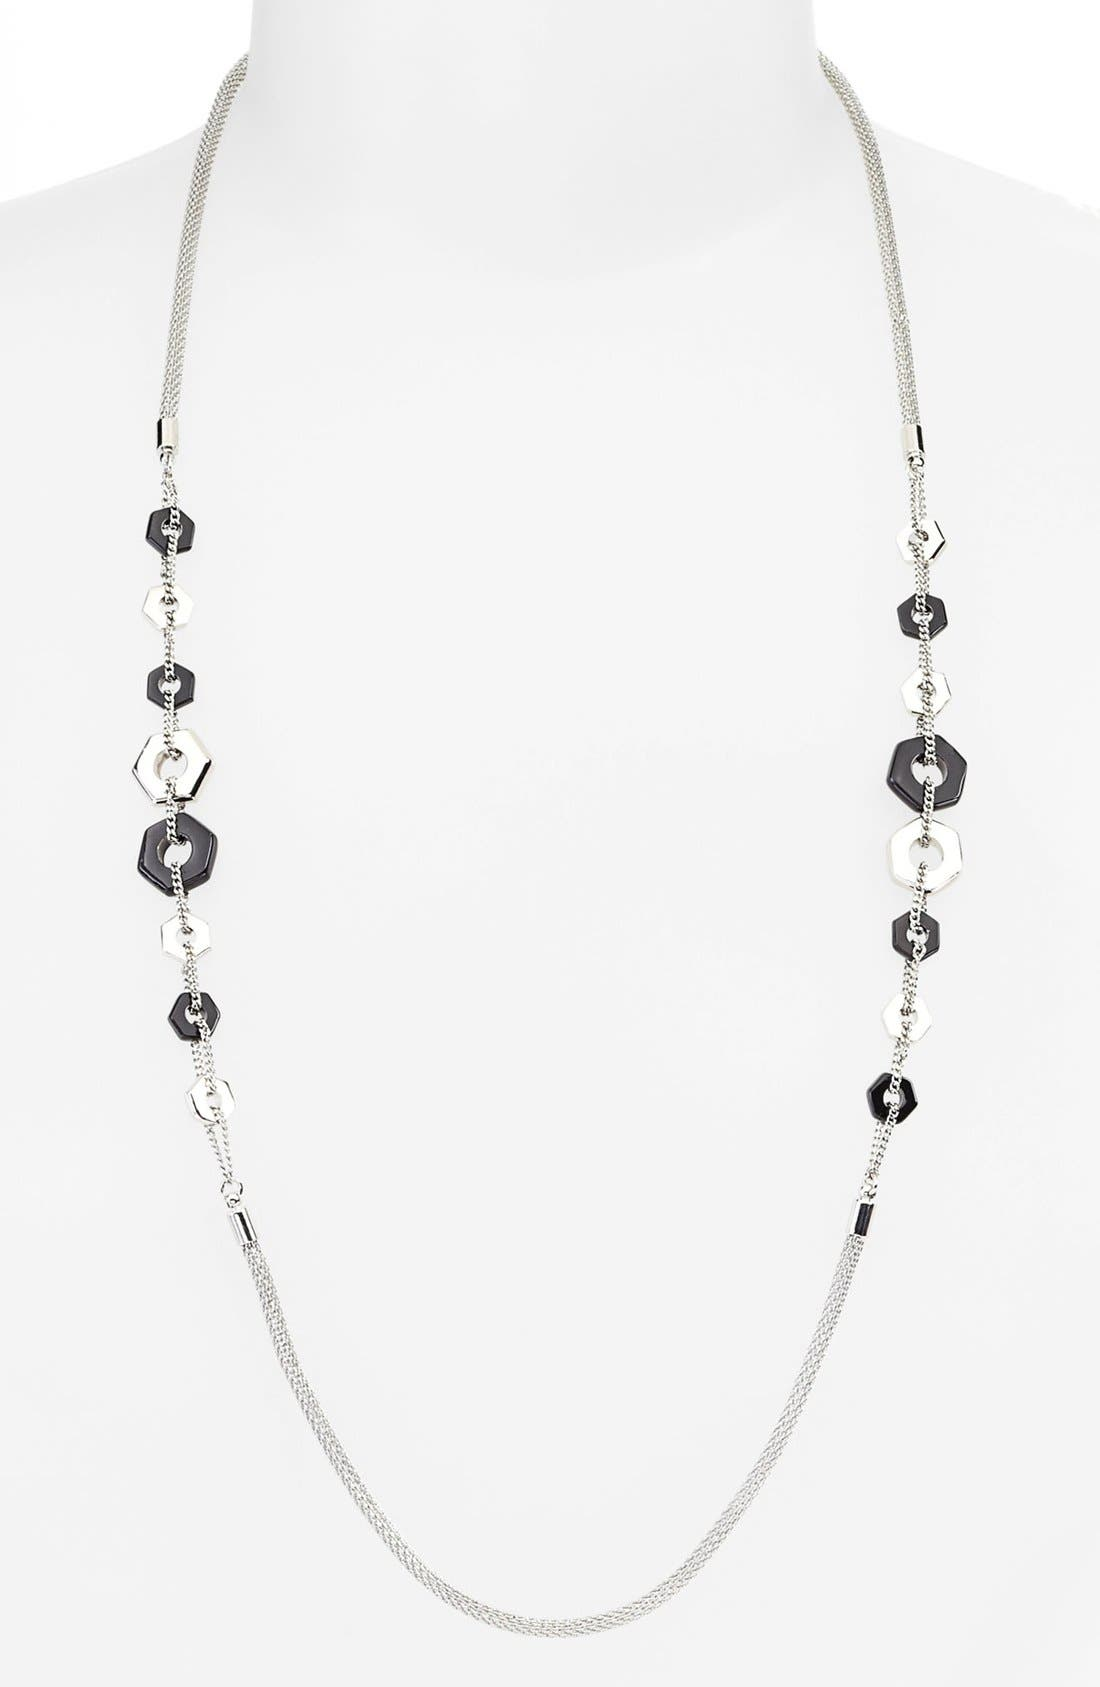 MARC BY MARC JACOBS,                             'Bolts' Long Station Necklace,                             Alternate thumbnail 2, color,                             001